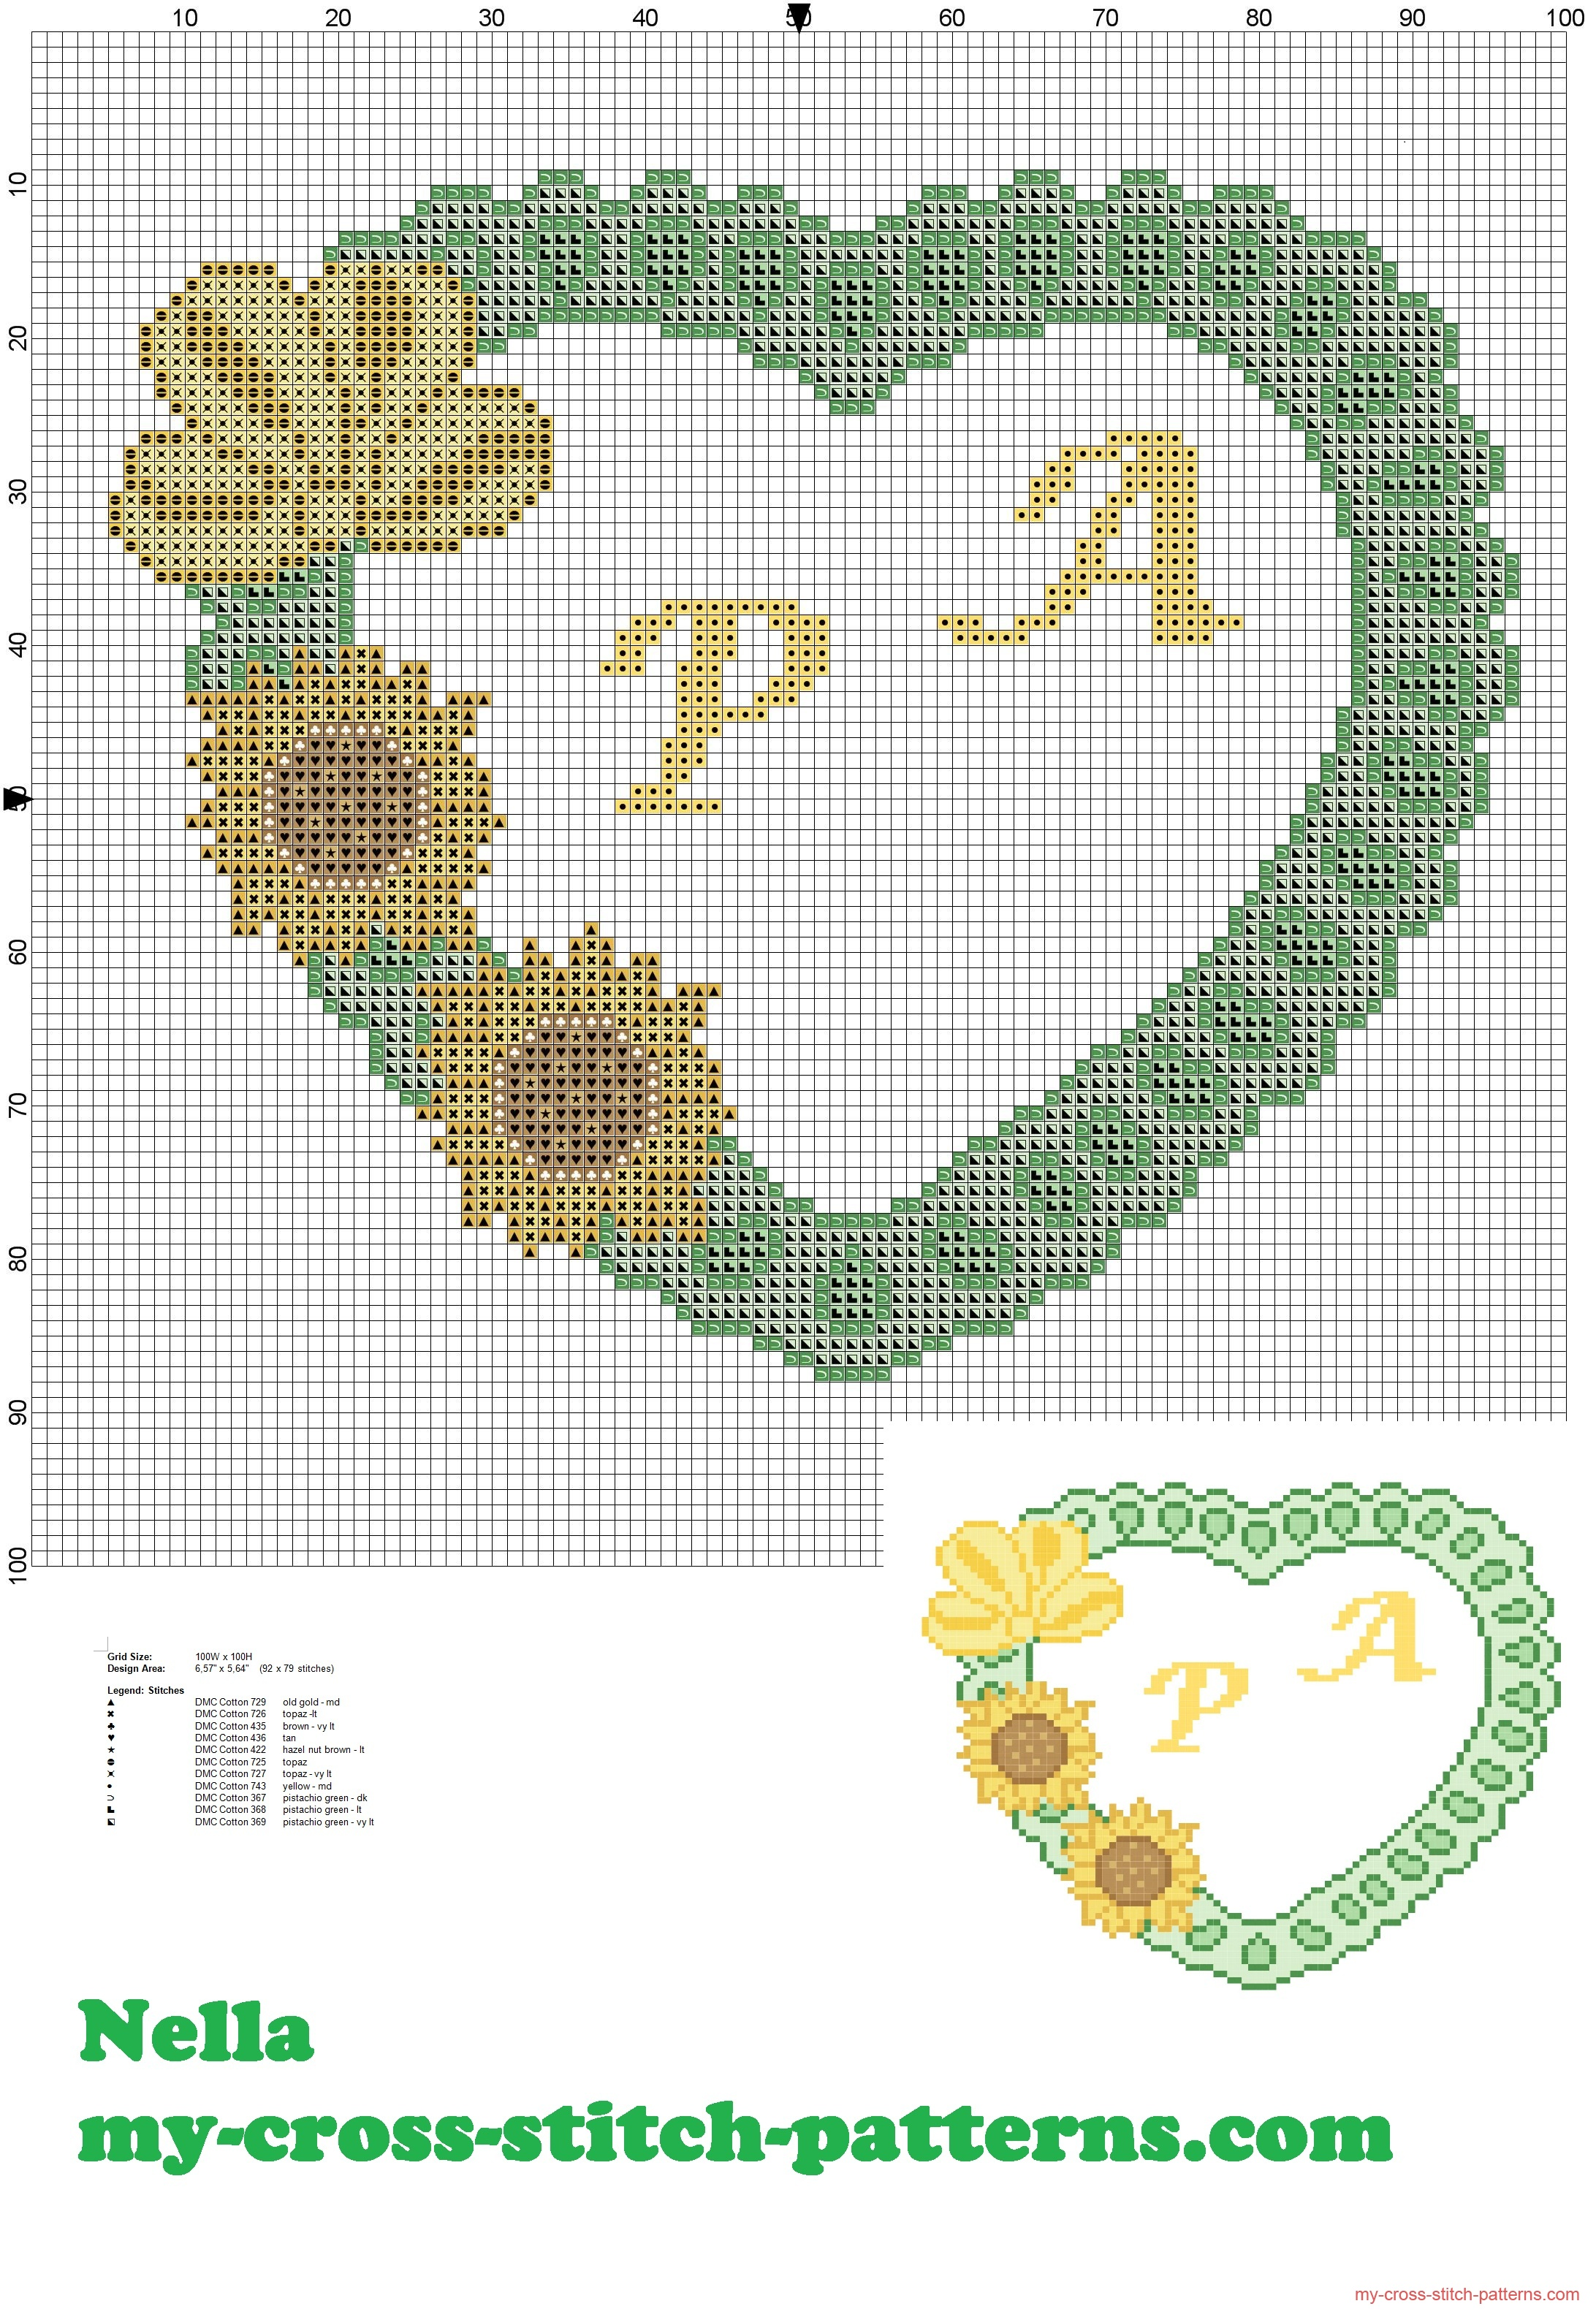 pillow_rings_heart_with_sunflowers